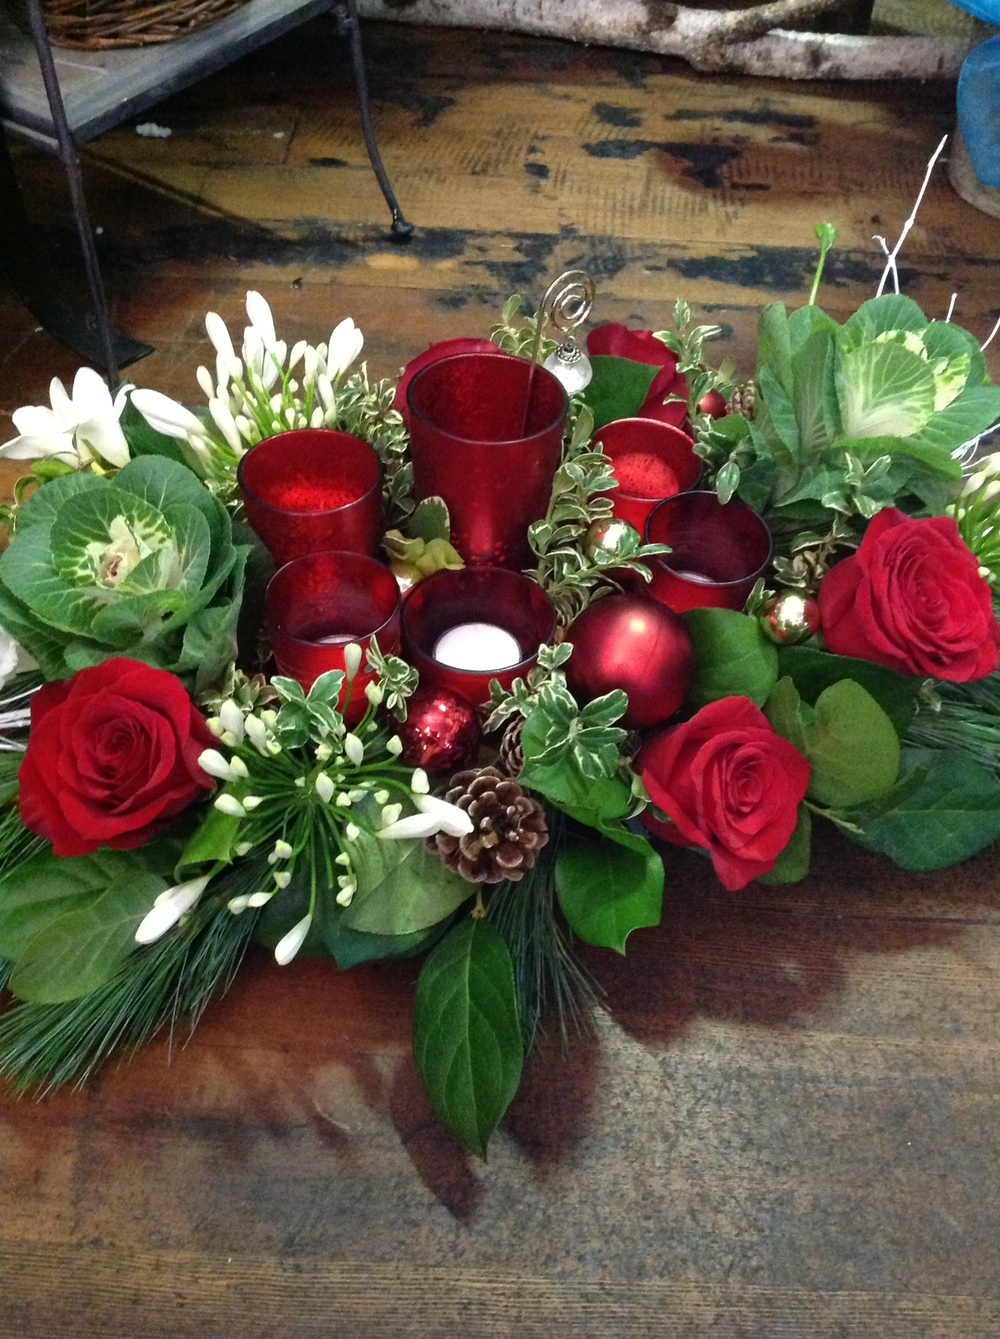 67. Low Holiday Centerpiece with Votive Candles